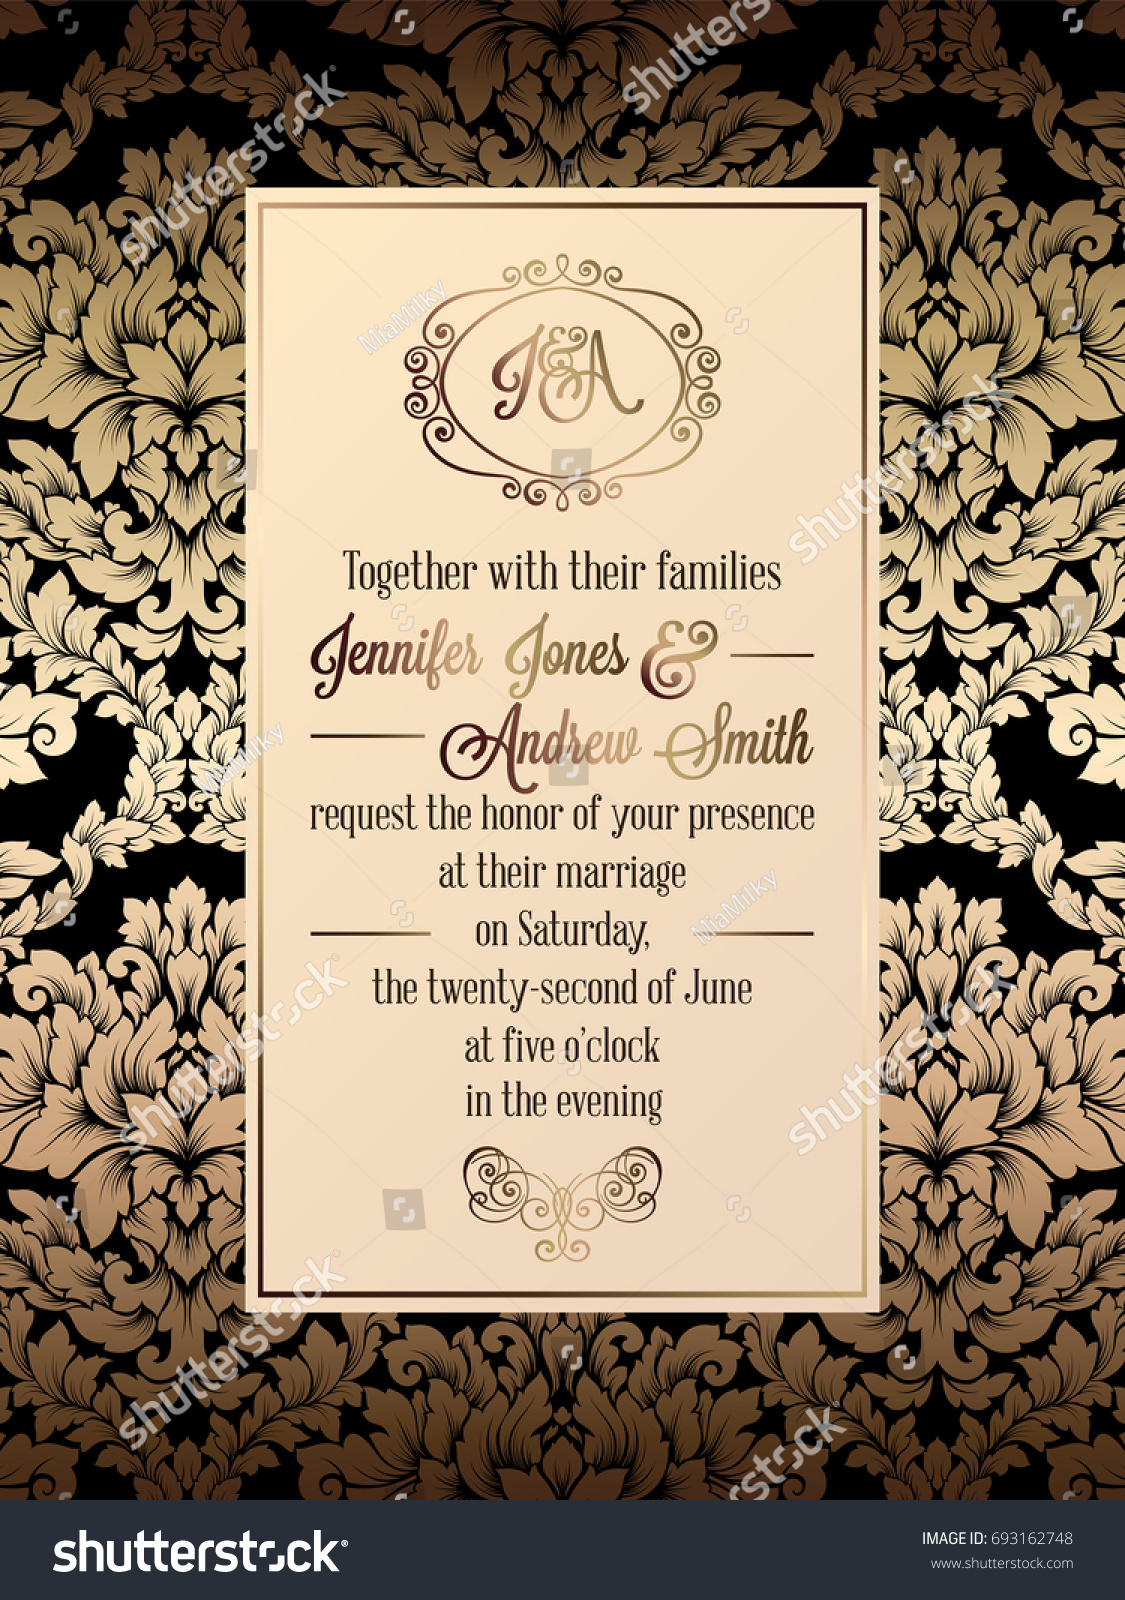 Vintage baroque style wedding invitation card stock illustration vintage baroque style wedding invitation card template elegant formal design with damask background stopboris Choice Image